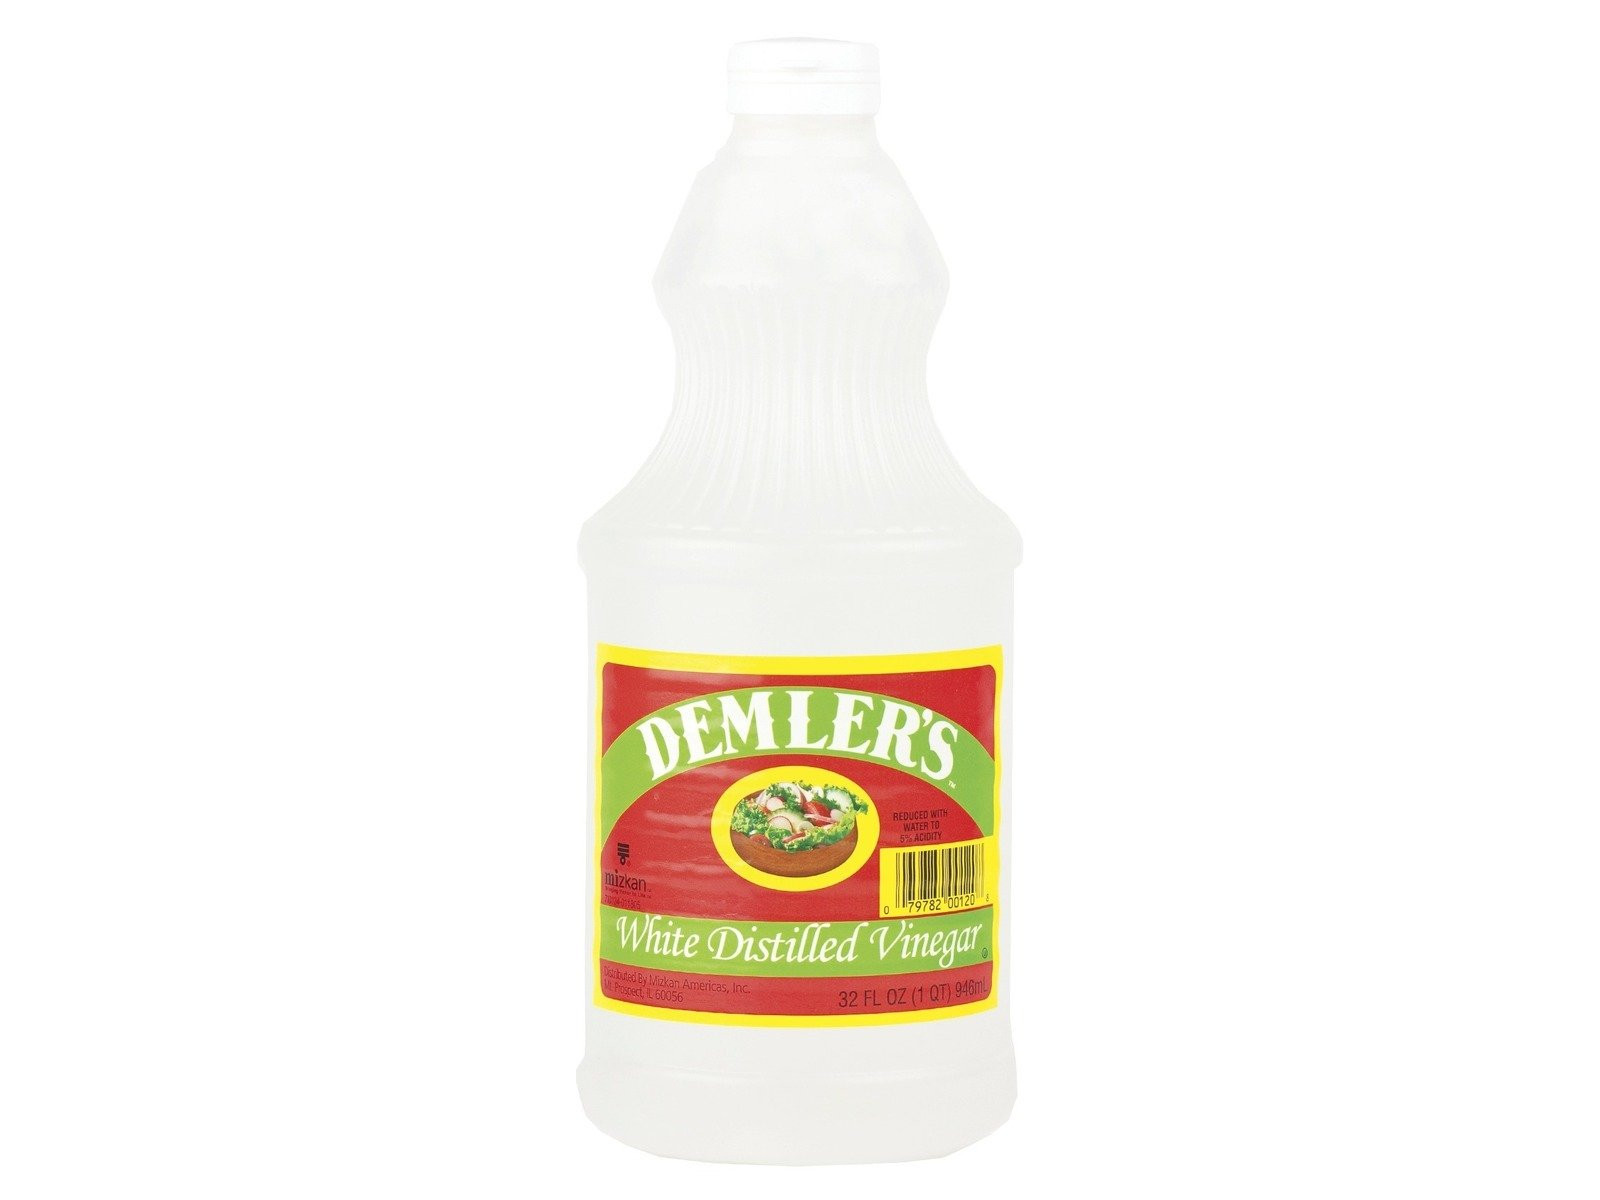 Demler's White Distilled Vinegar (4 pack)